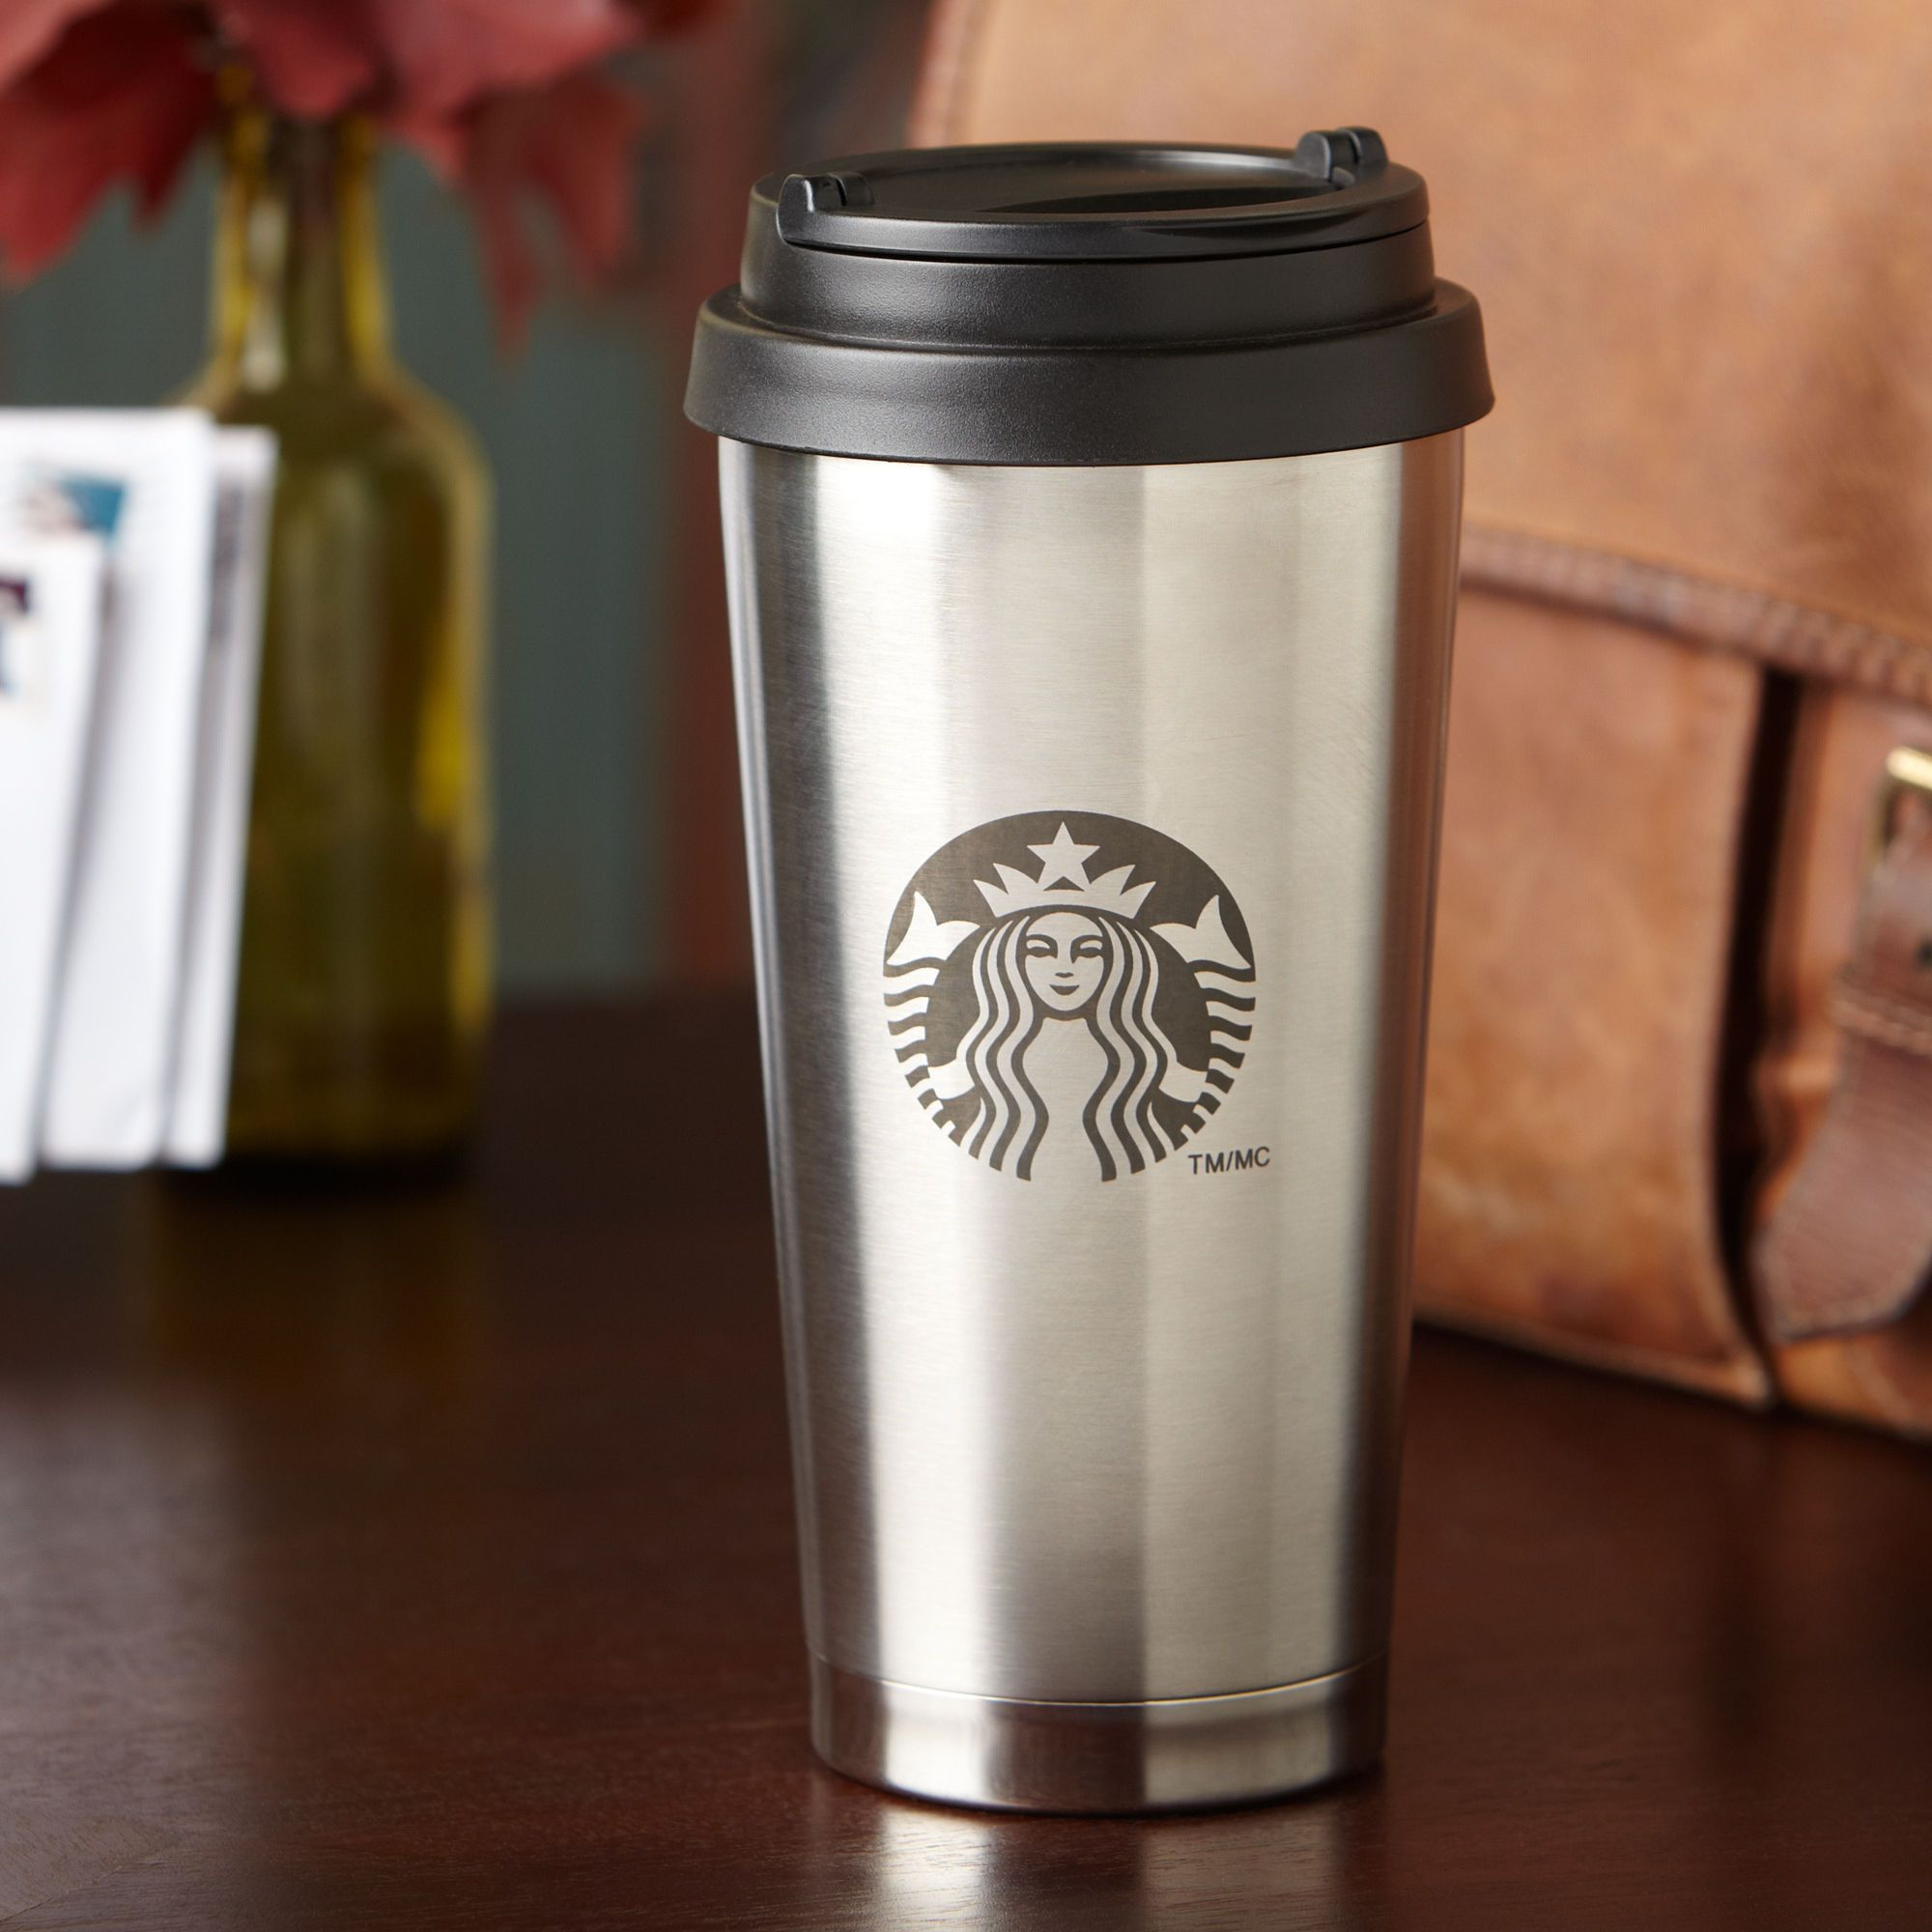 coffee tumbler stainless steel starbucks i so need one of these taylor had a good one and it. Black Bedroom Furniture Sets. Home Design Ideas